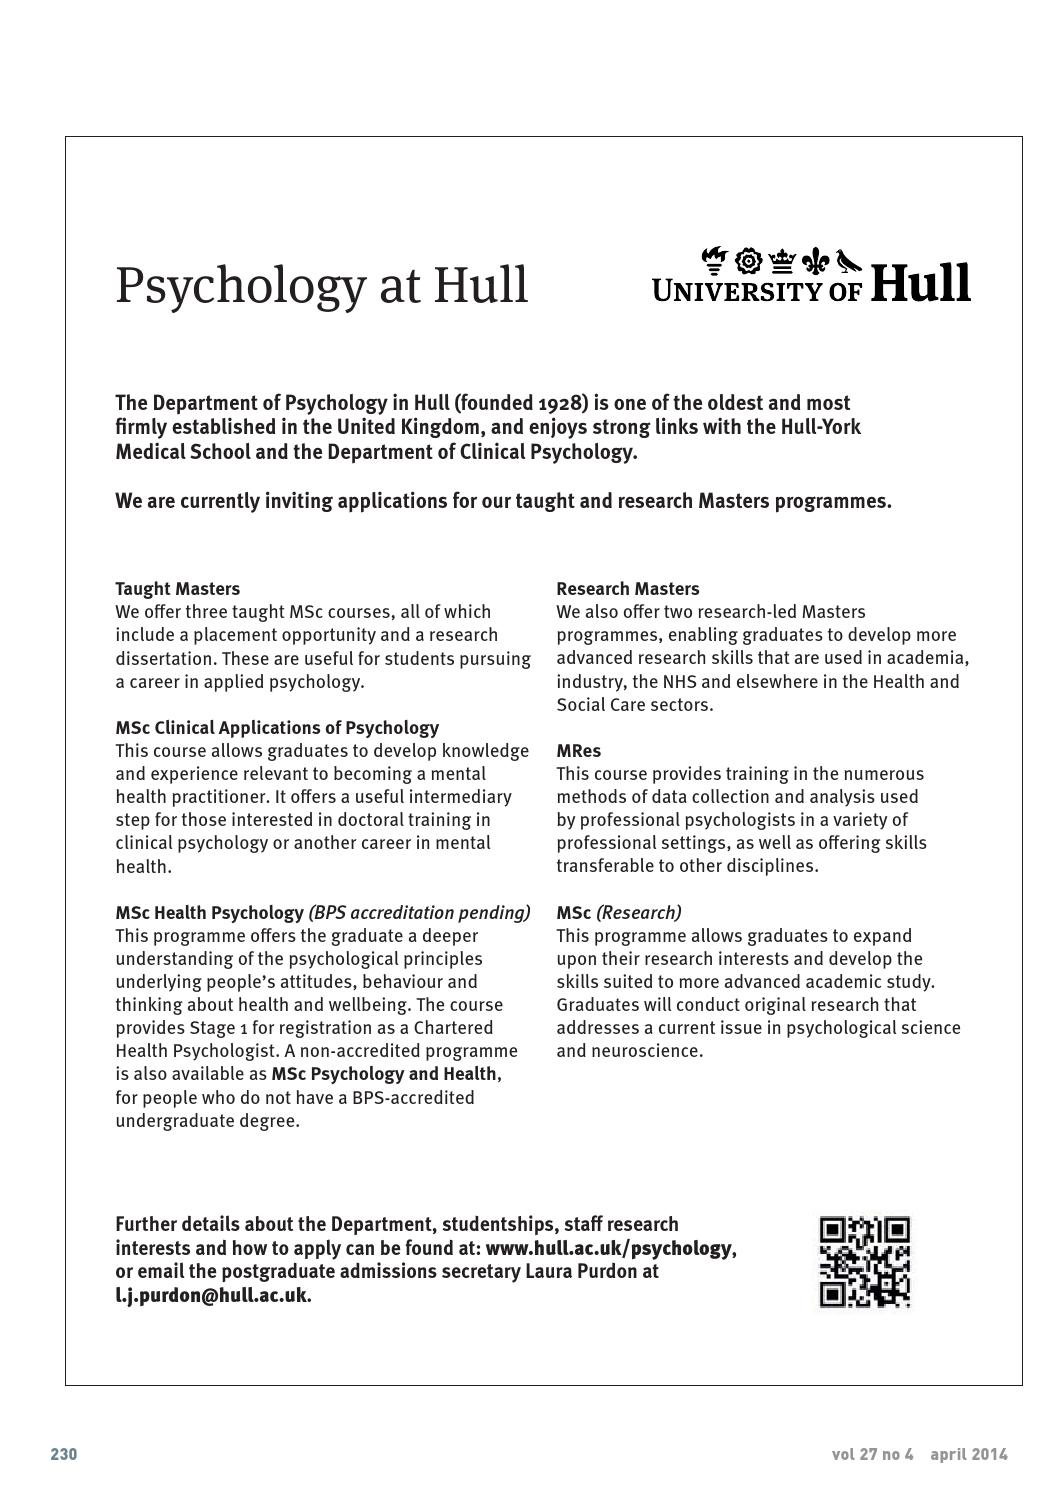 Cheap case study writer site for phd